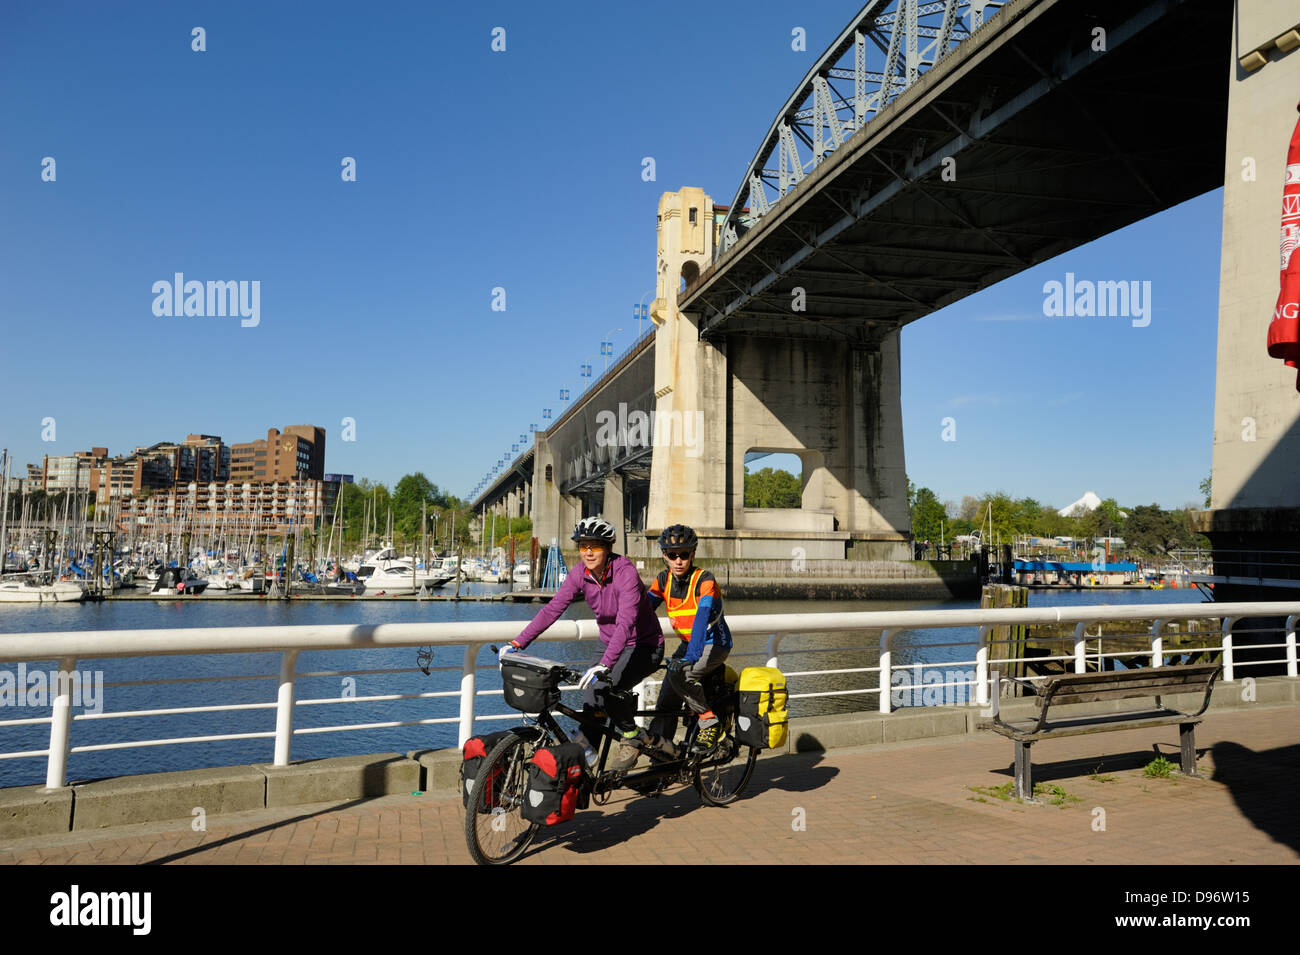 Bicyclists ride along the False Creek seawall walkway with the Burrard street bridge above, Vancouver British Columbia. - Stock Image